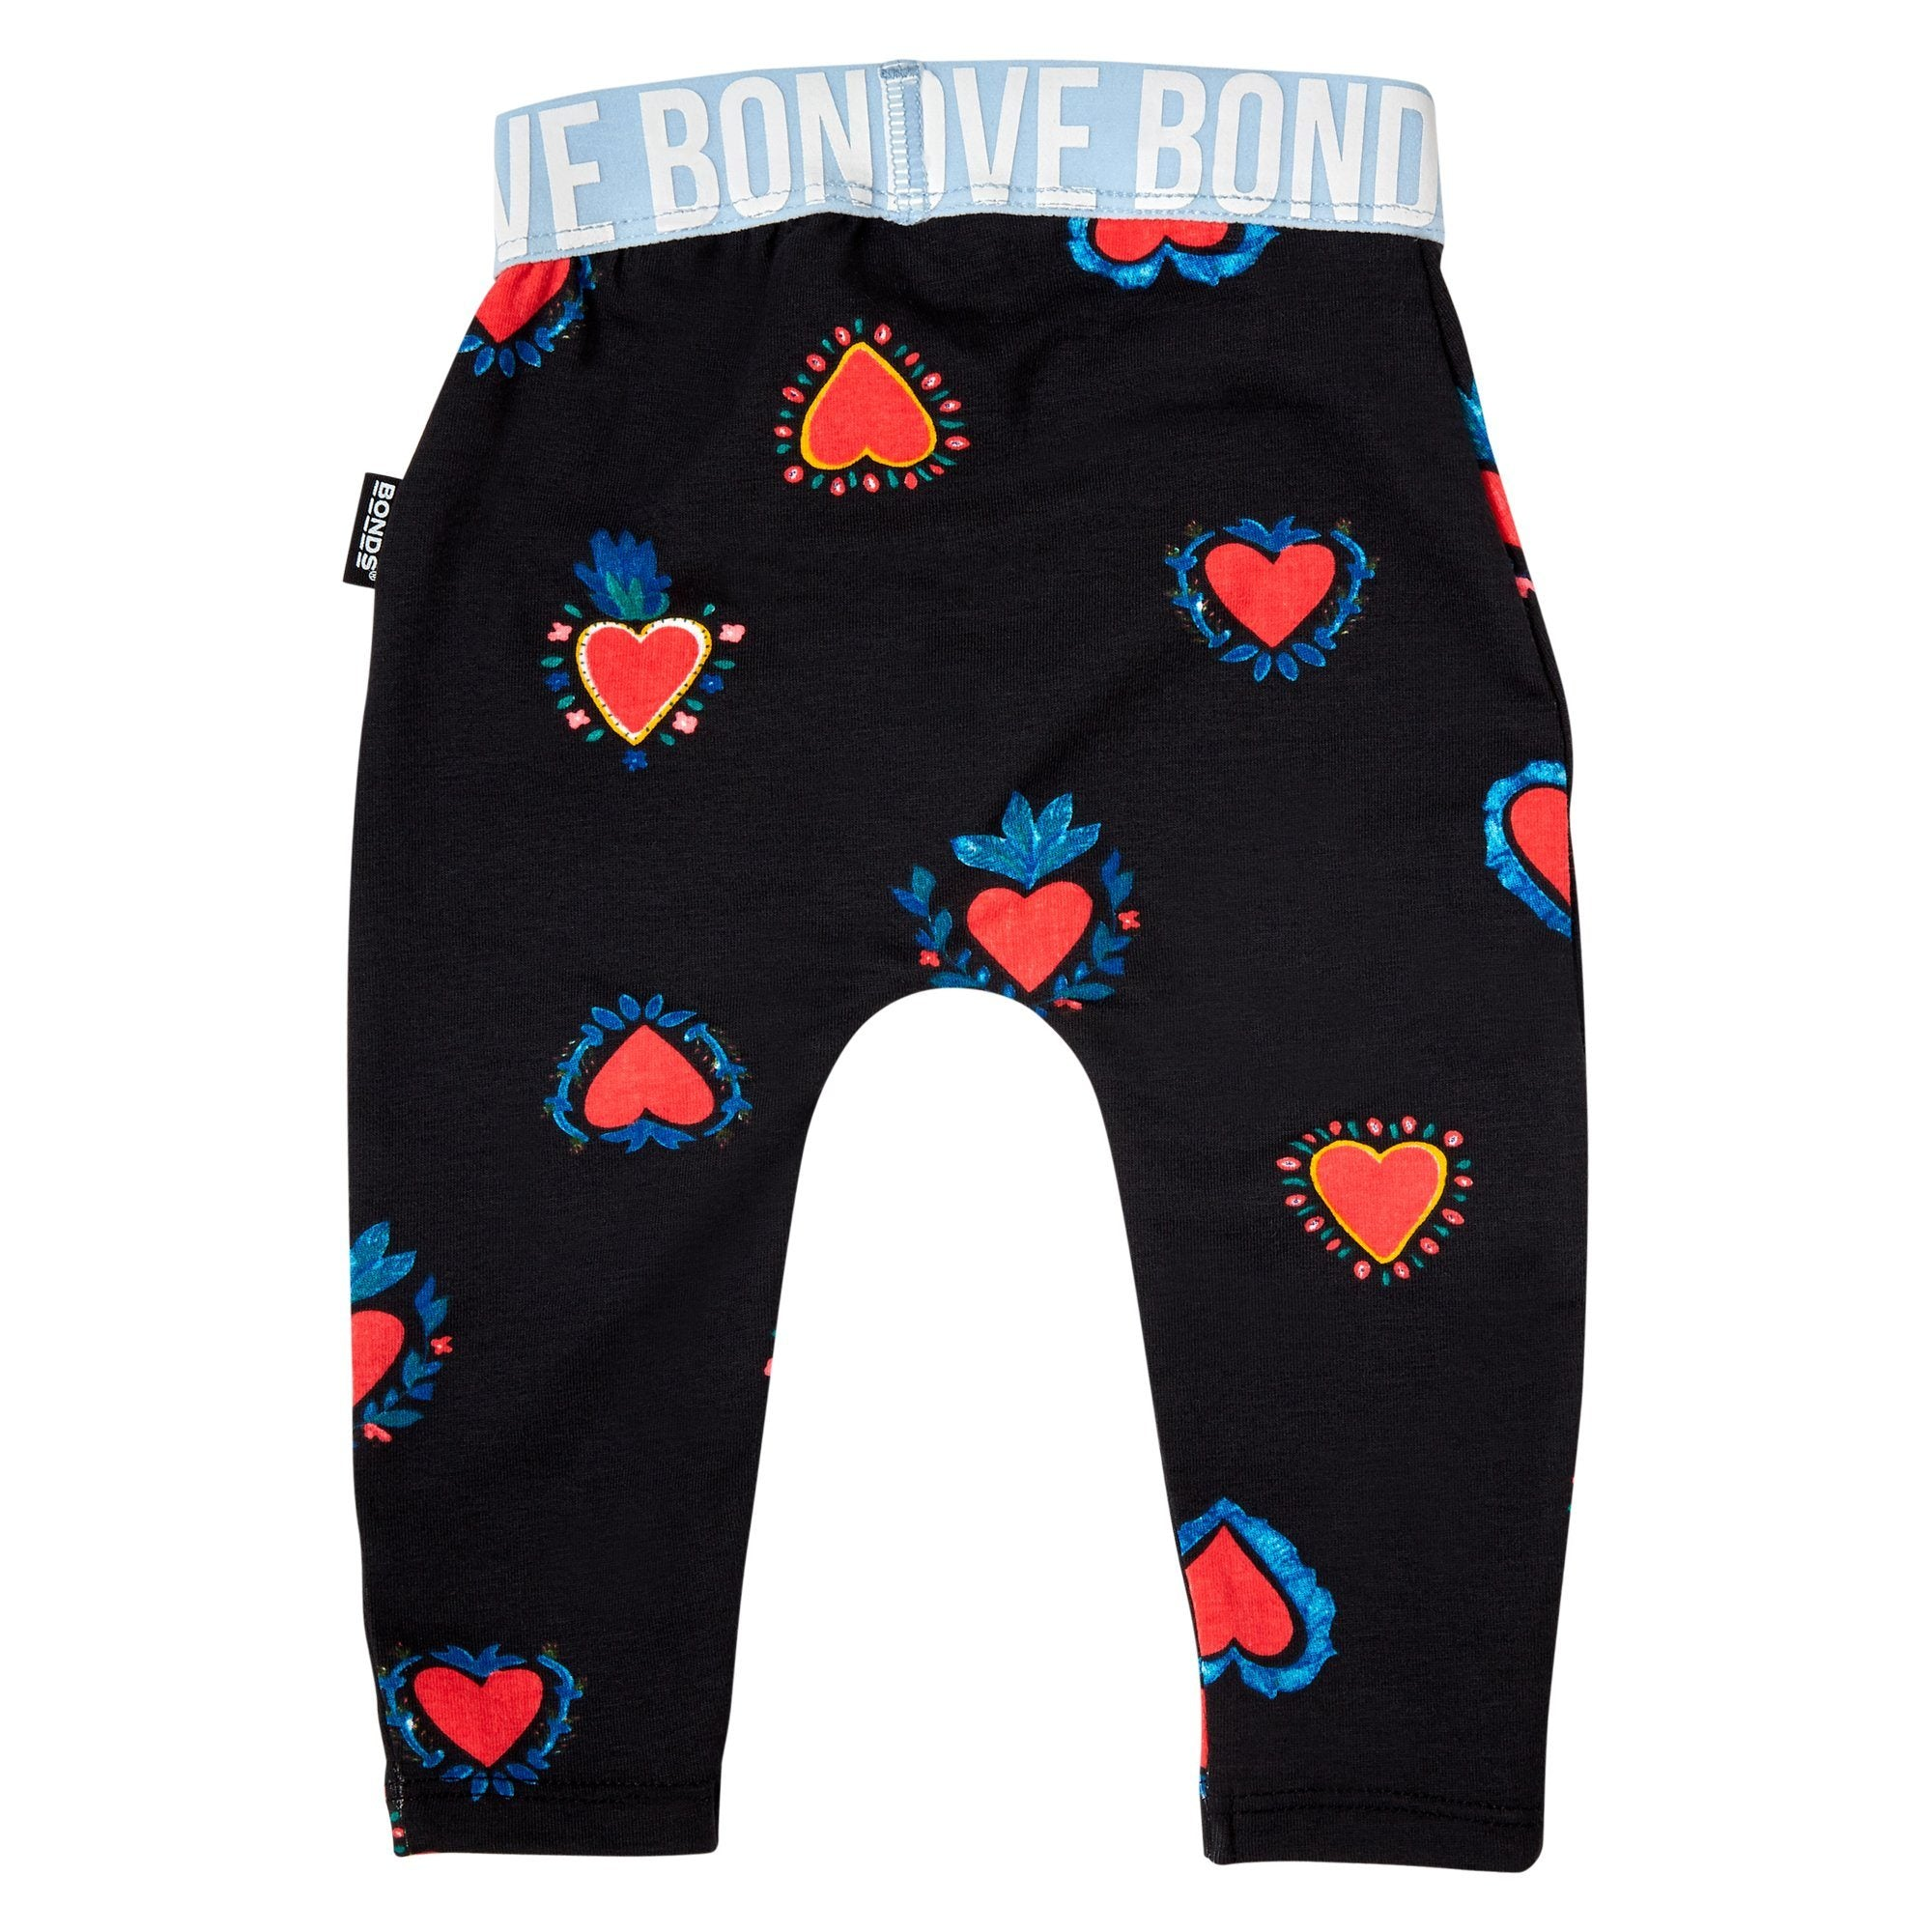 Bonds Baby Stretchies Logo Legging Black Baby Isbister & Co Wholesale